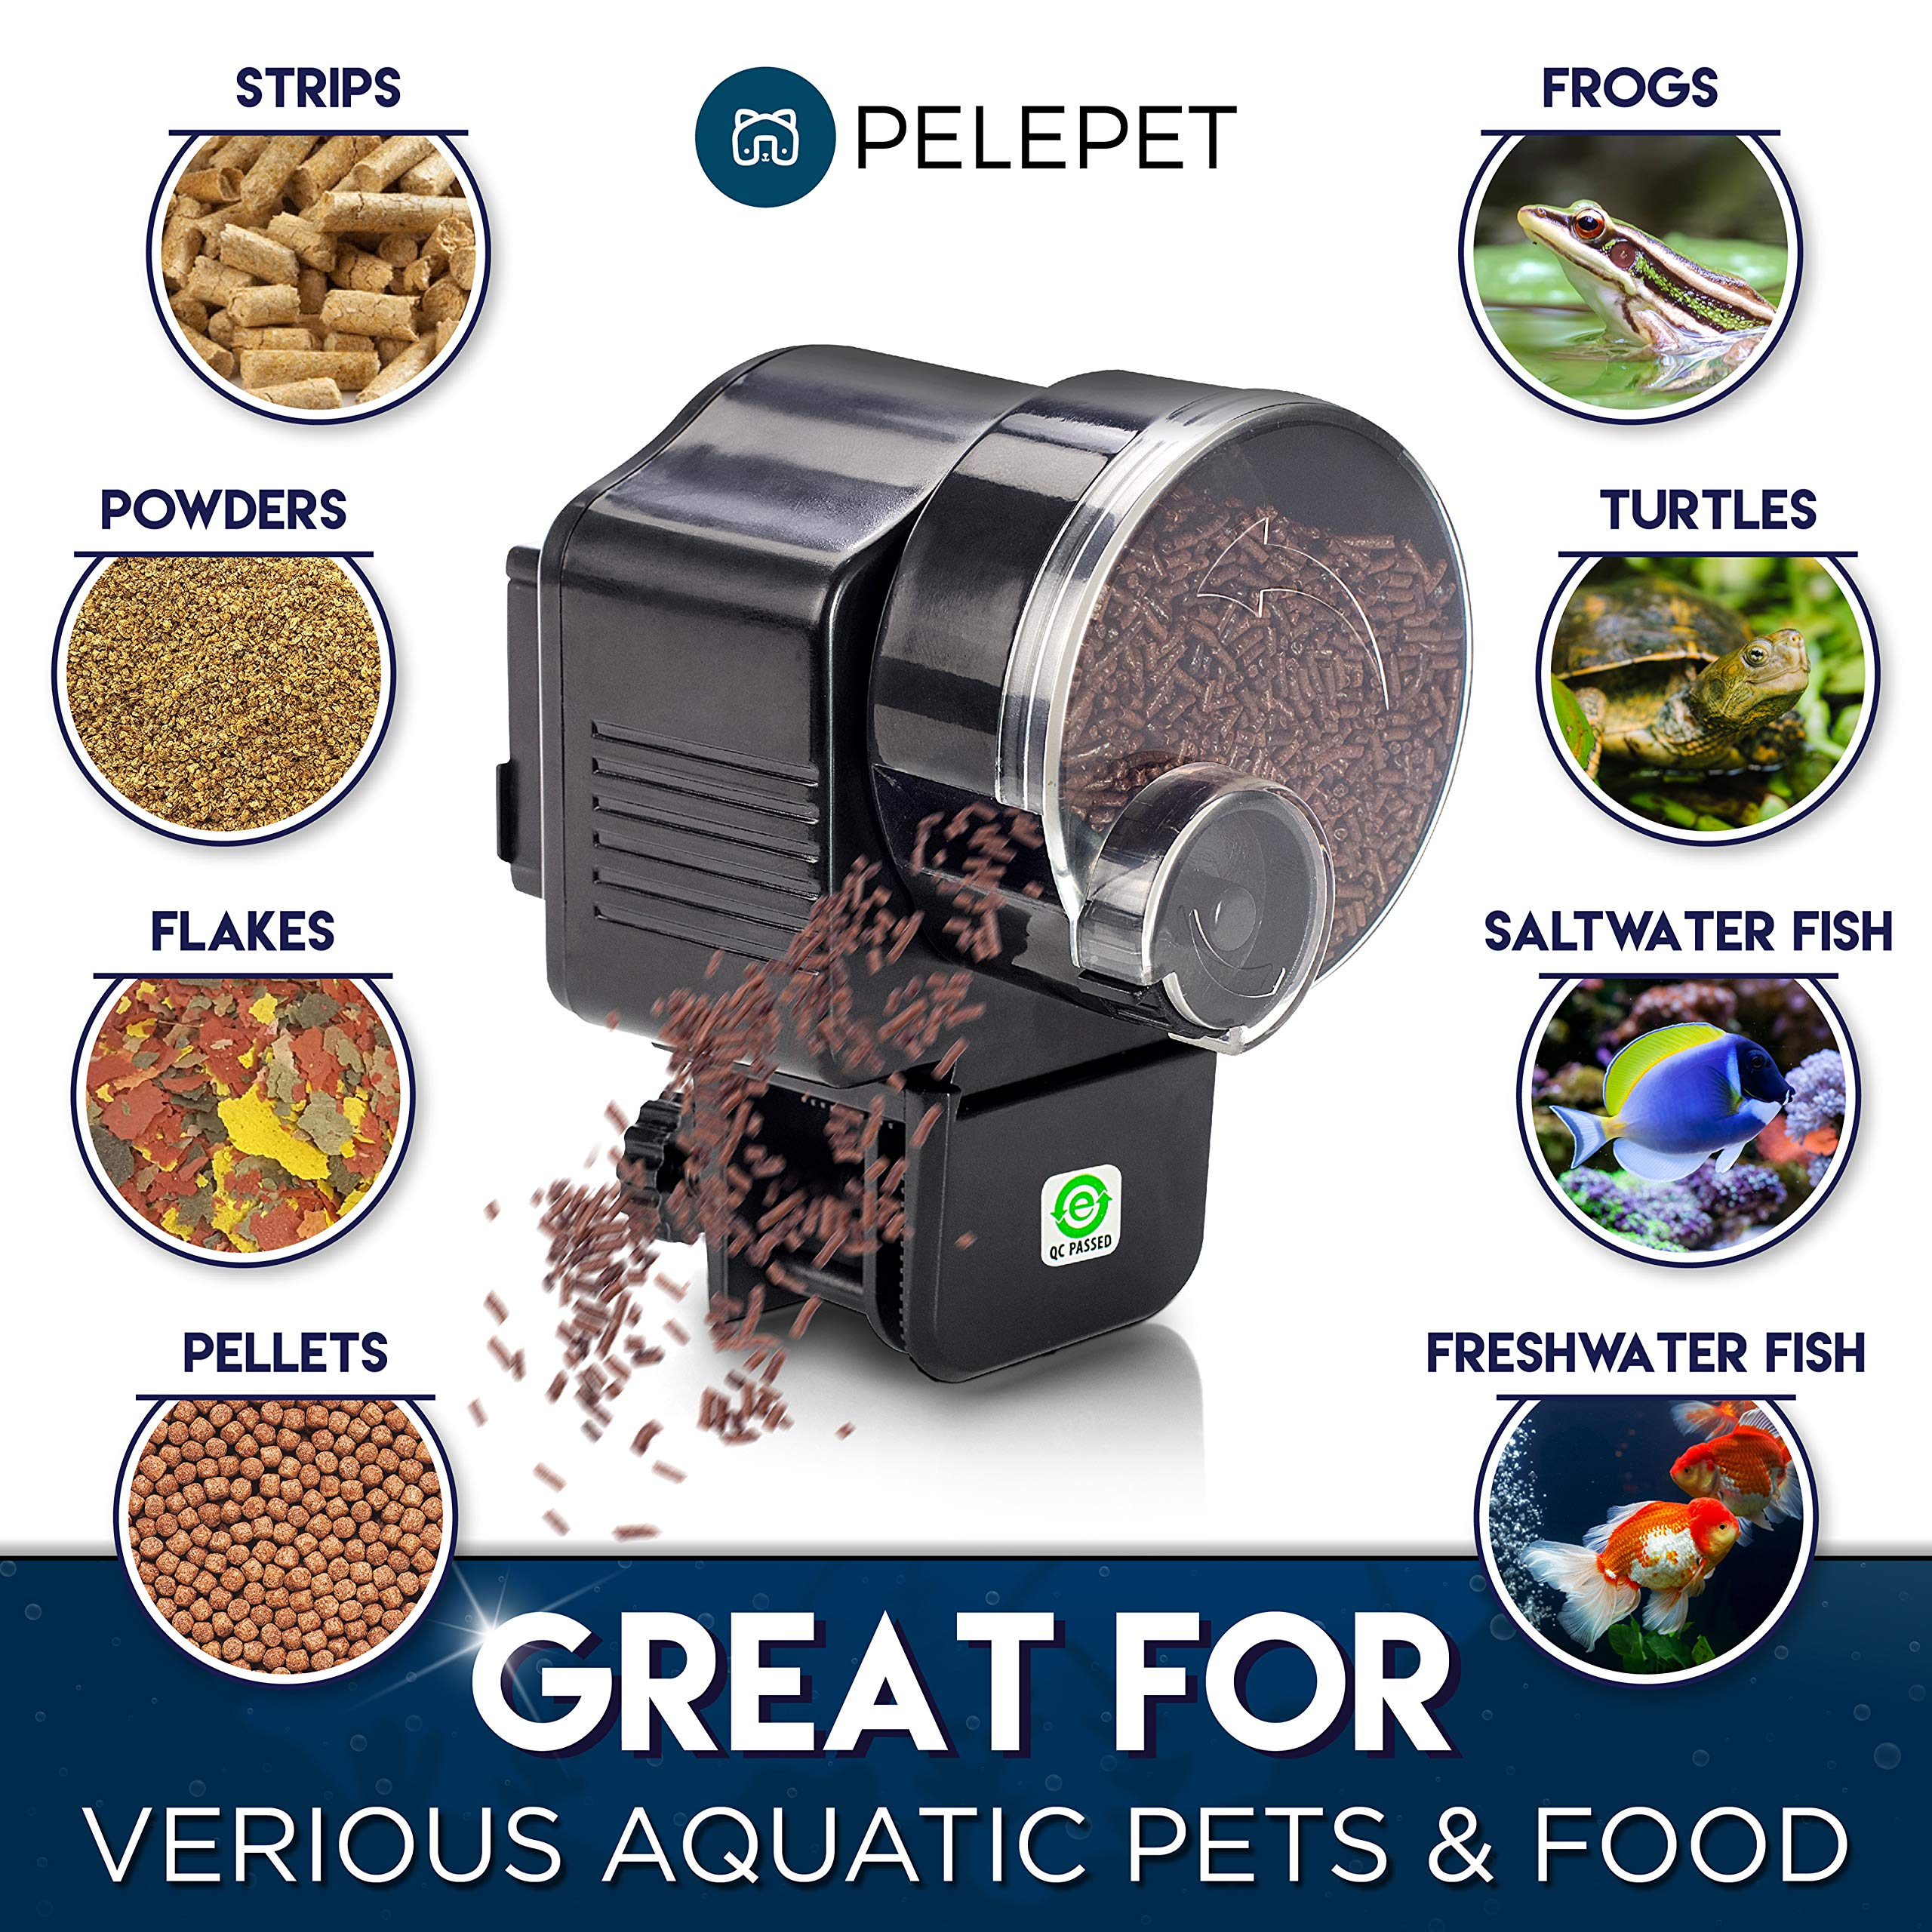 PELEPET Automatic Fish Feeder - Aquarium Feeder - Fish Food Vacation Feeder - Auto Feeding Unit + Net for Fish Tank, Thermostat & Jelly Fish - Everyday Fish Food Dispenser by PELEPET (Image #7)